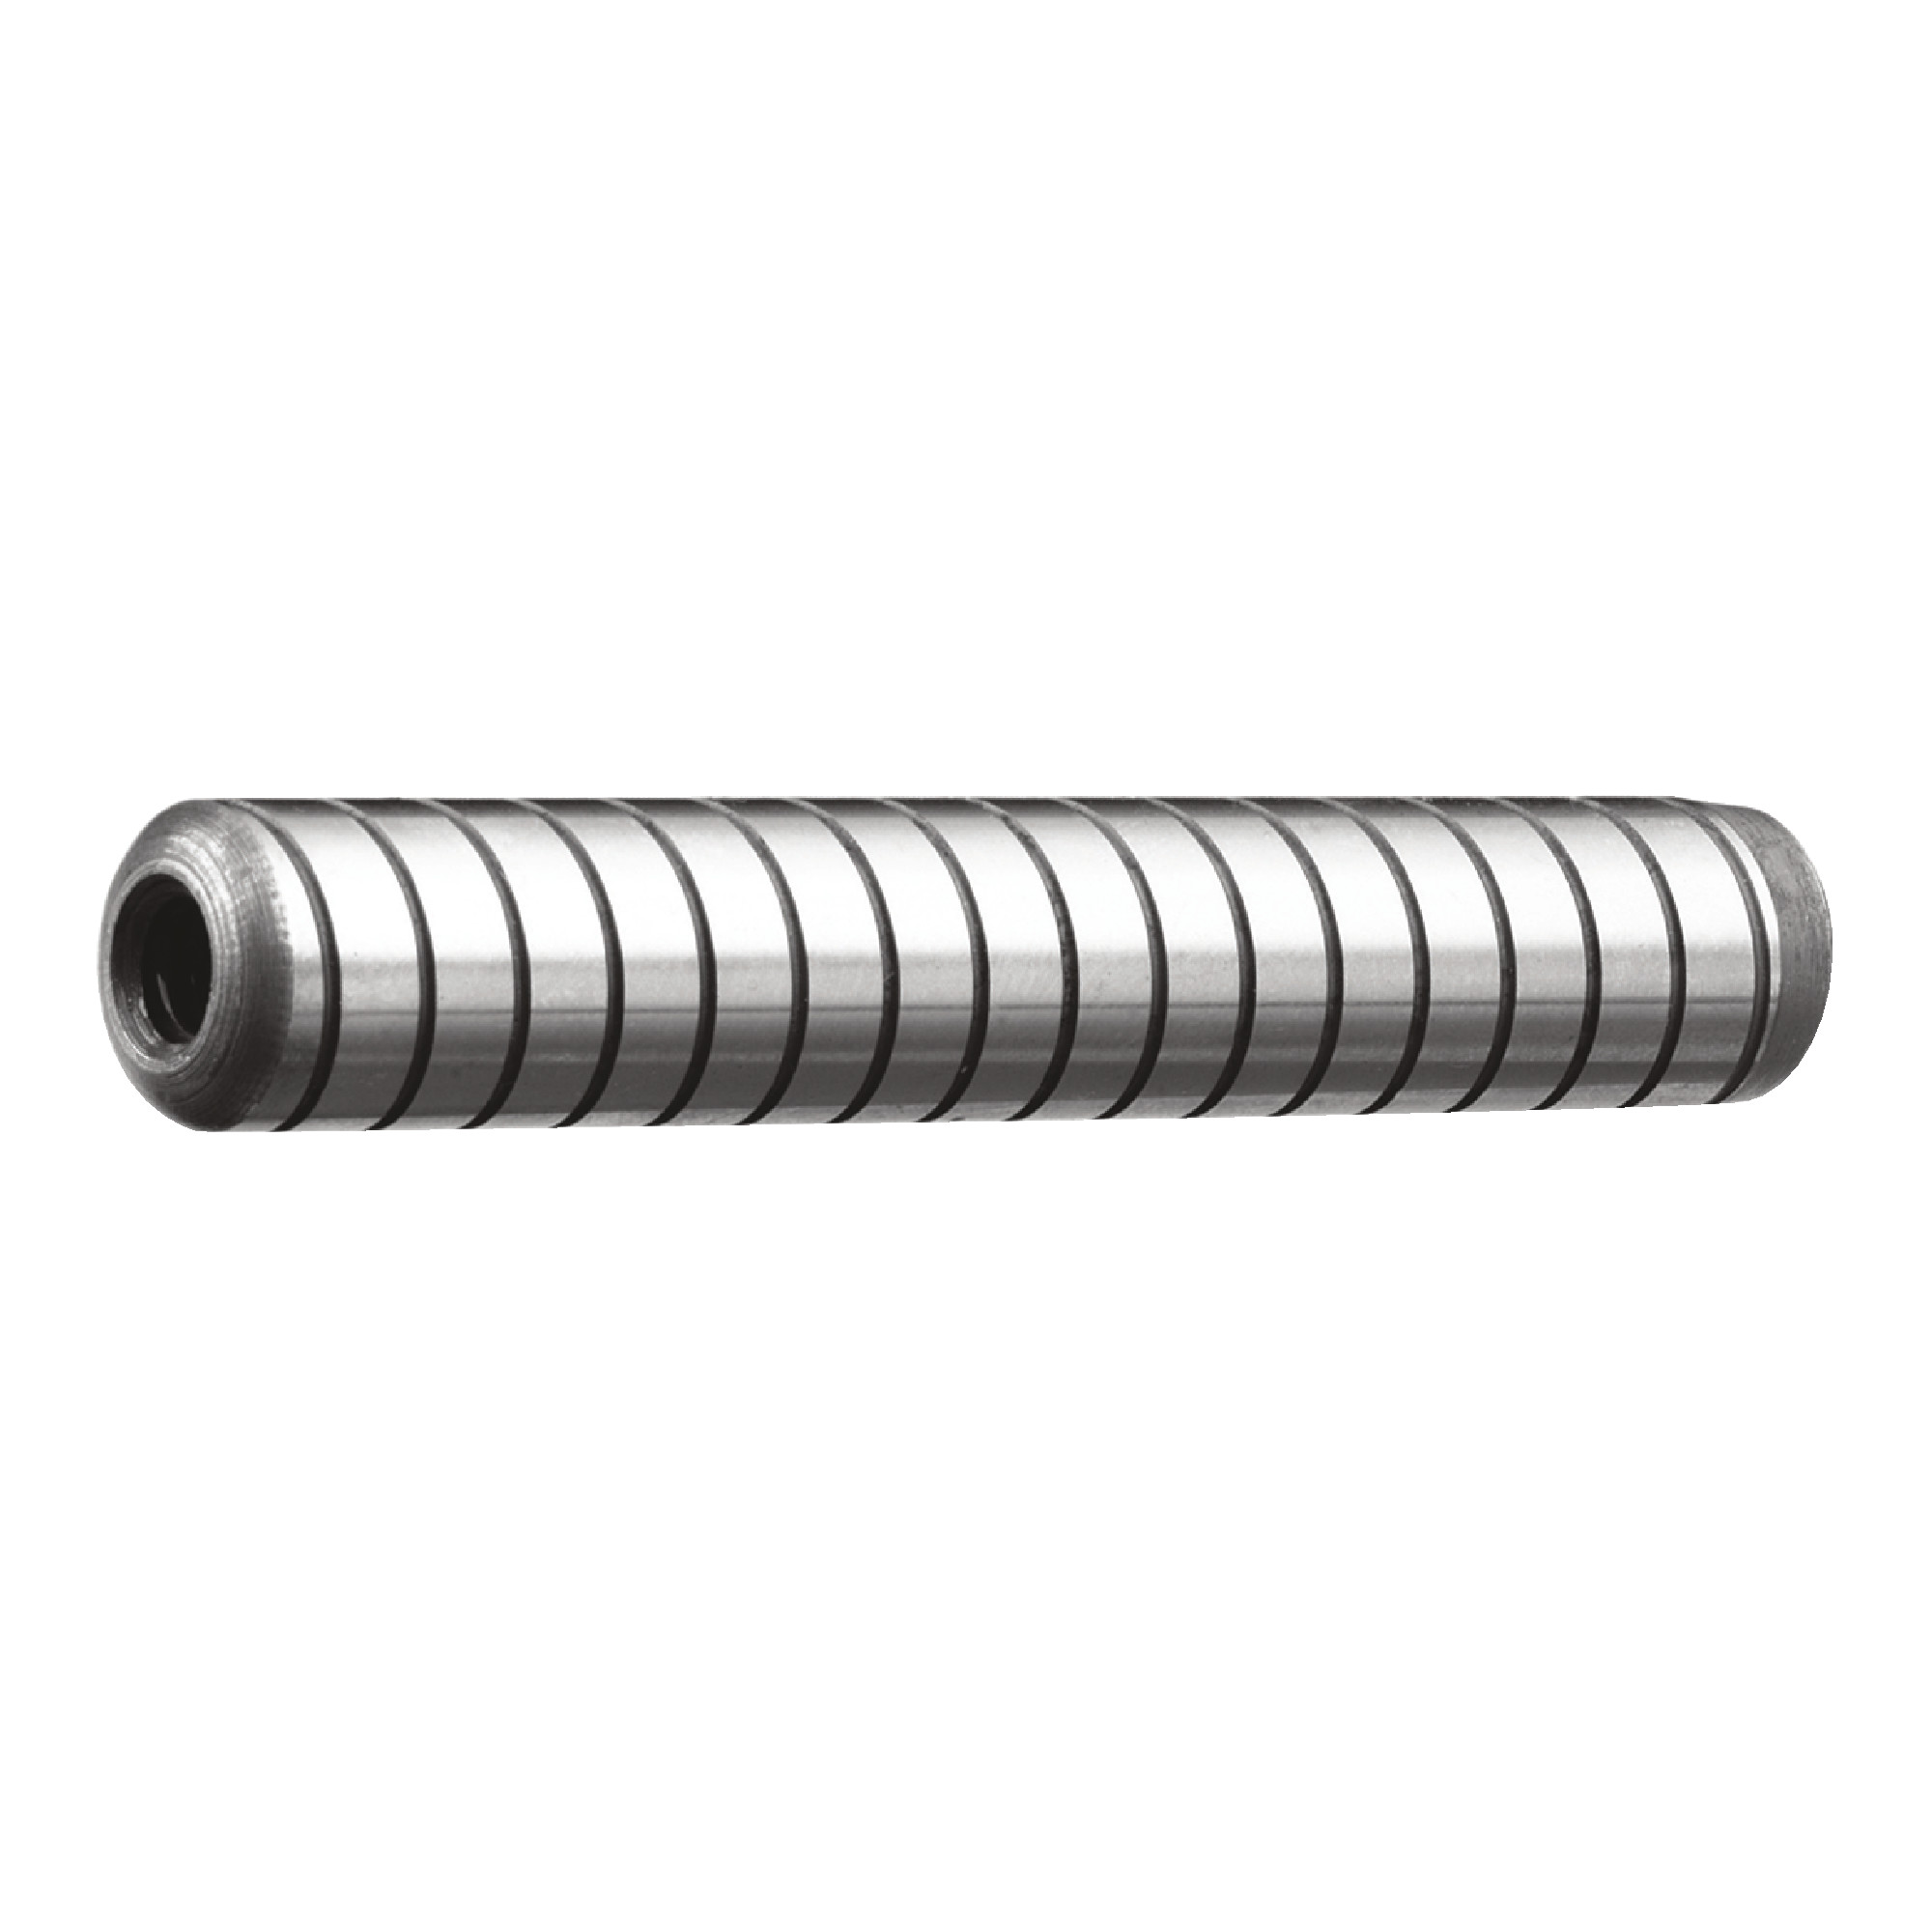 Pull Out Dowel Pin